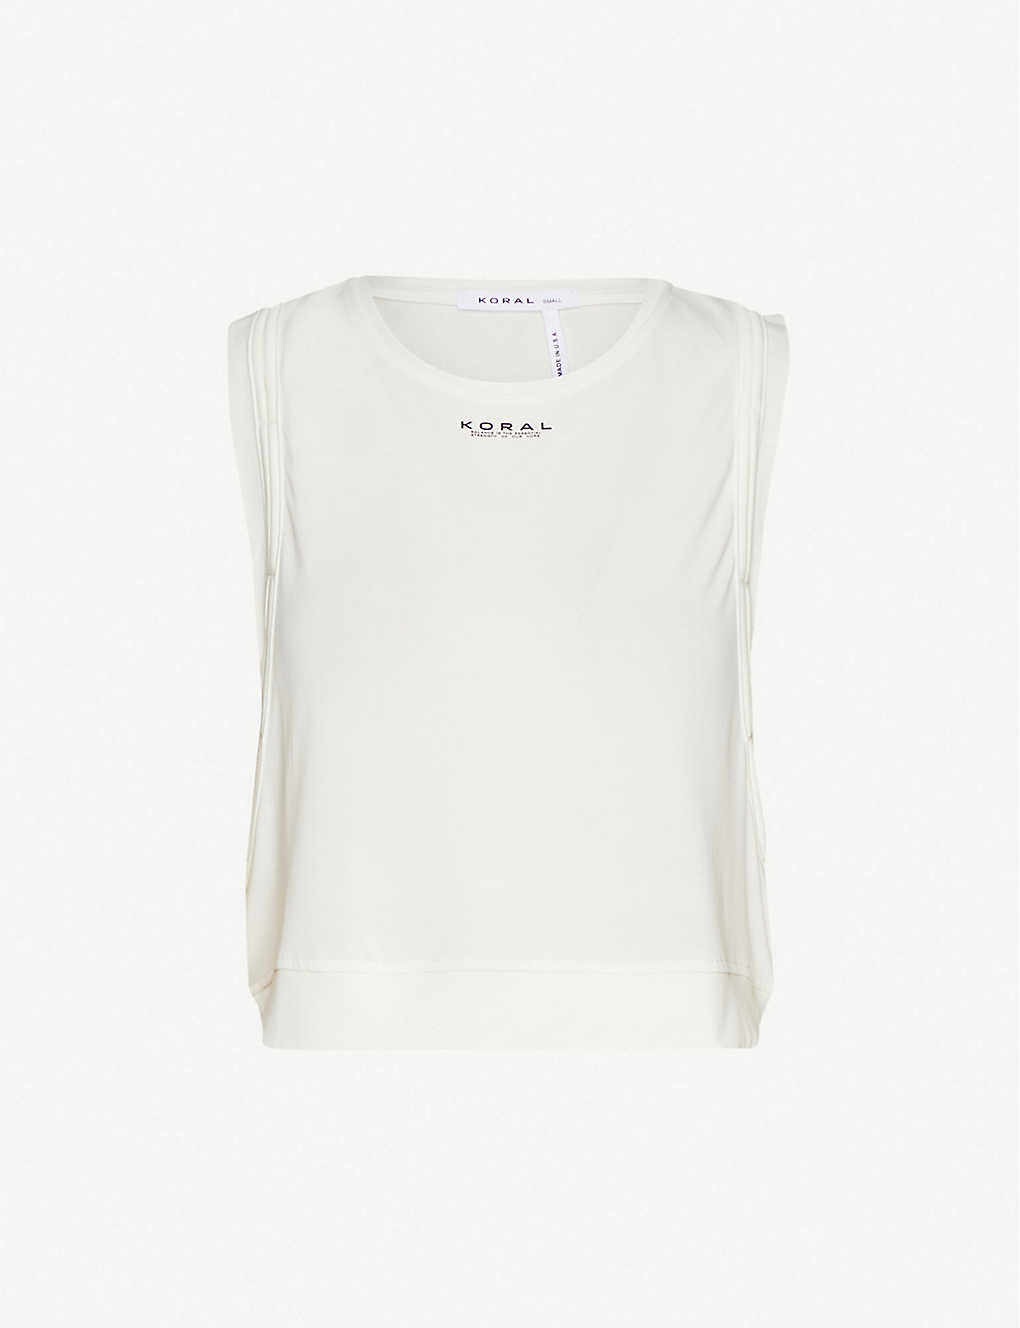 KORAL: Cut sleeveless stretch-jersey top